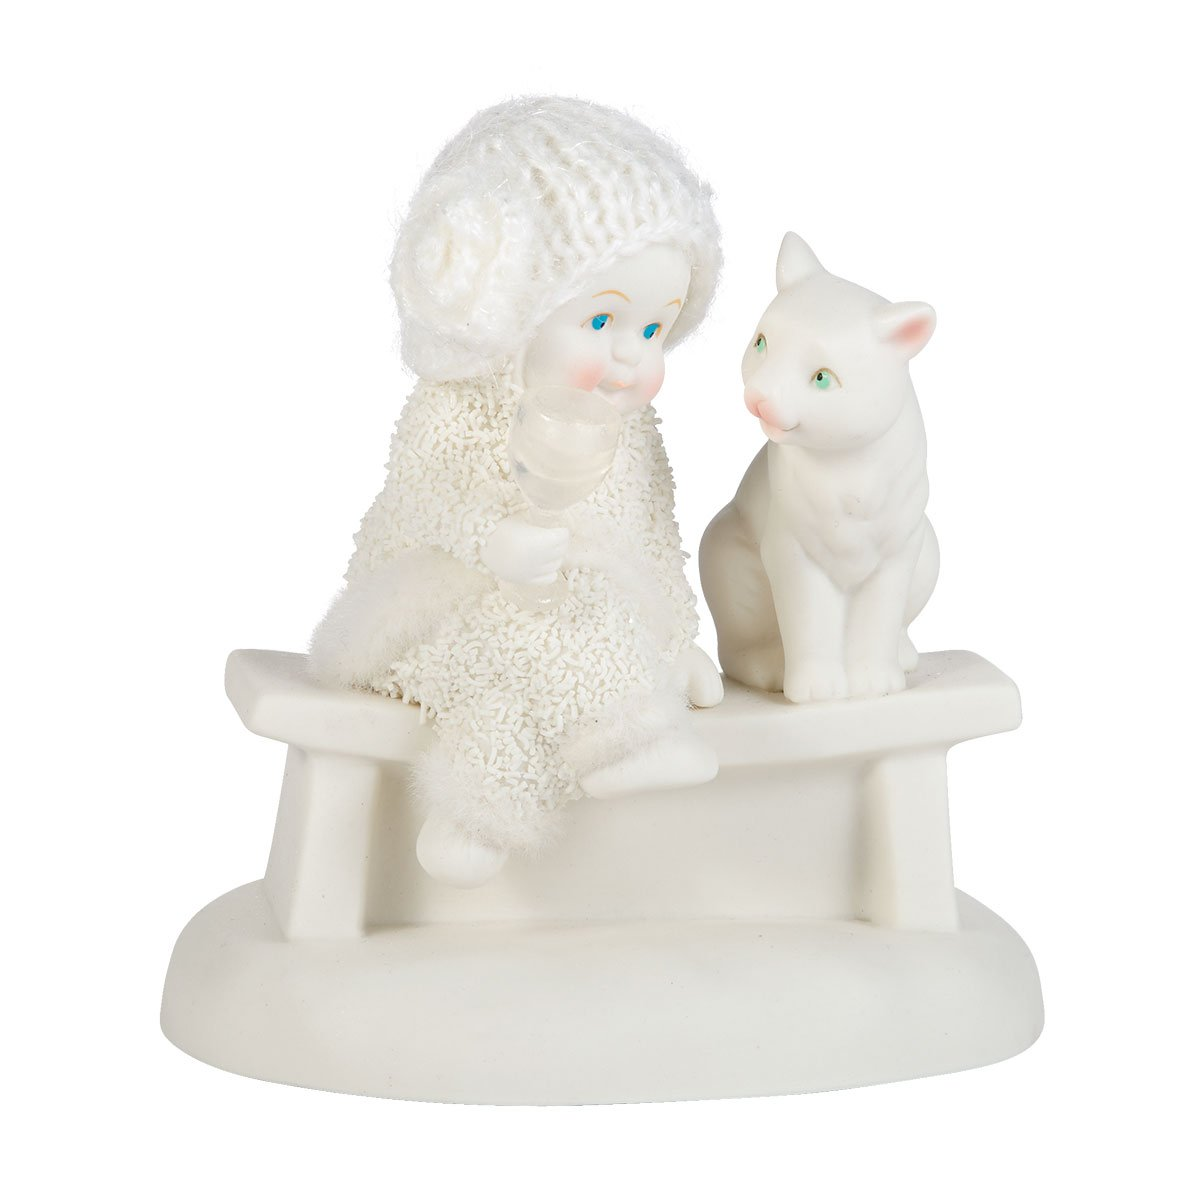 Department 56 Snowbabies Classics Kitty Cocktail Figurine, 3.75 inch